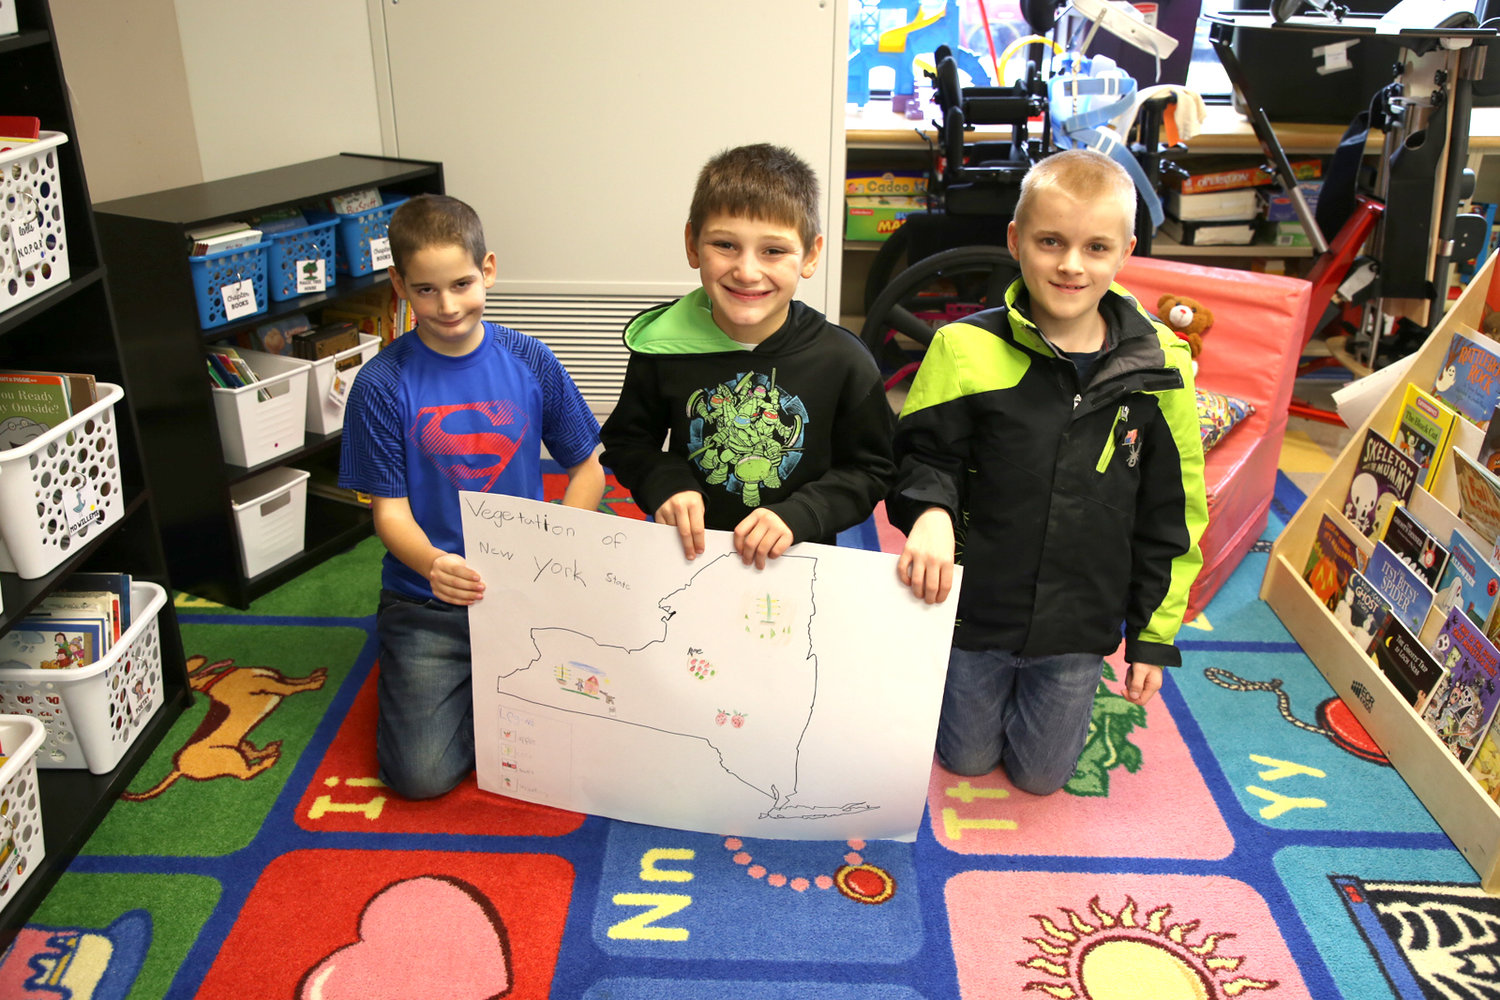 John E. Joy 4th grade students from Mrs. Darcangelo's class are pictured from left to right:  Matthew Grinnals, Patrick DeLong and Jaden Bonanza